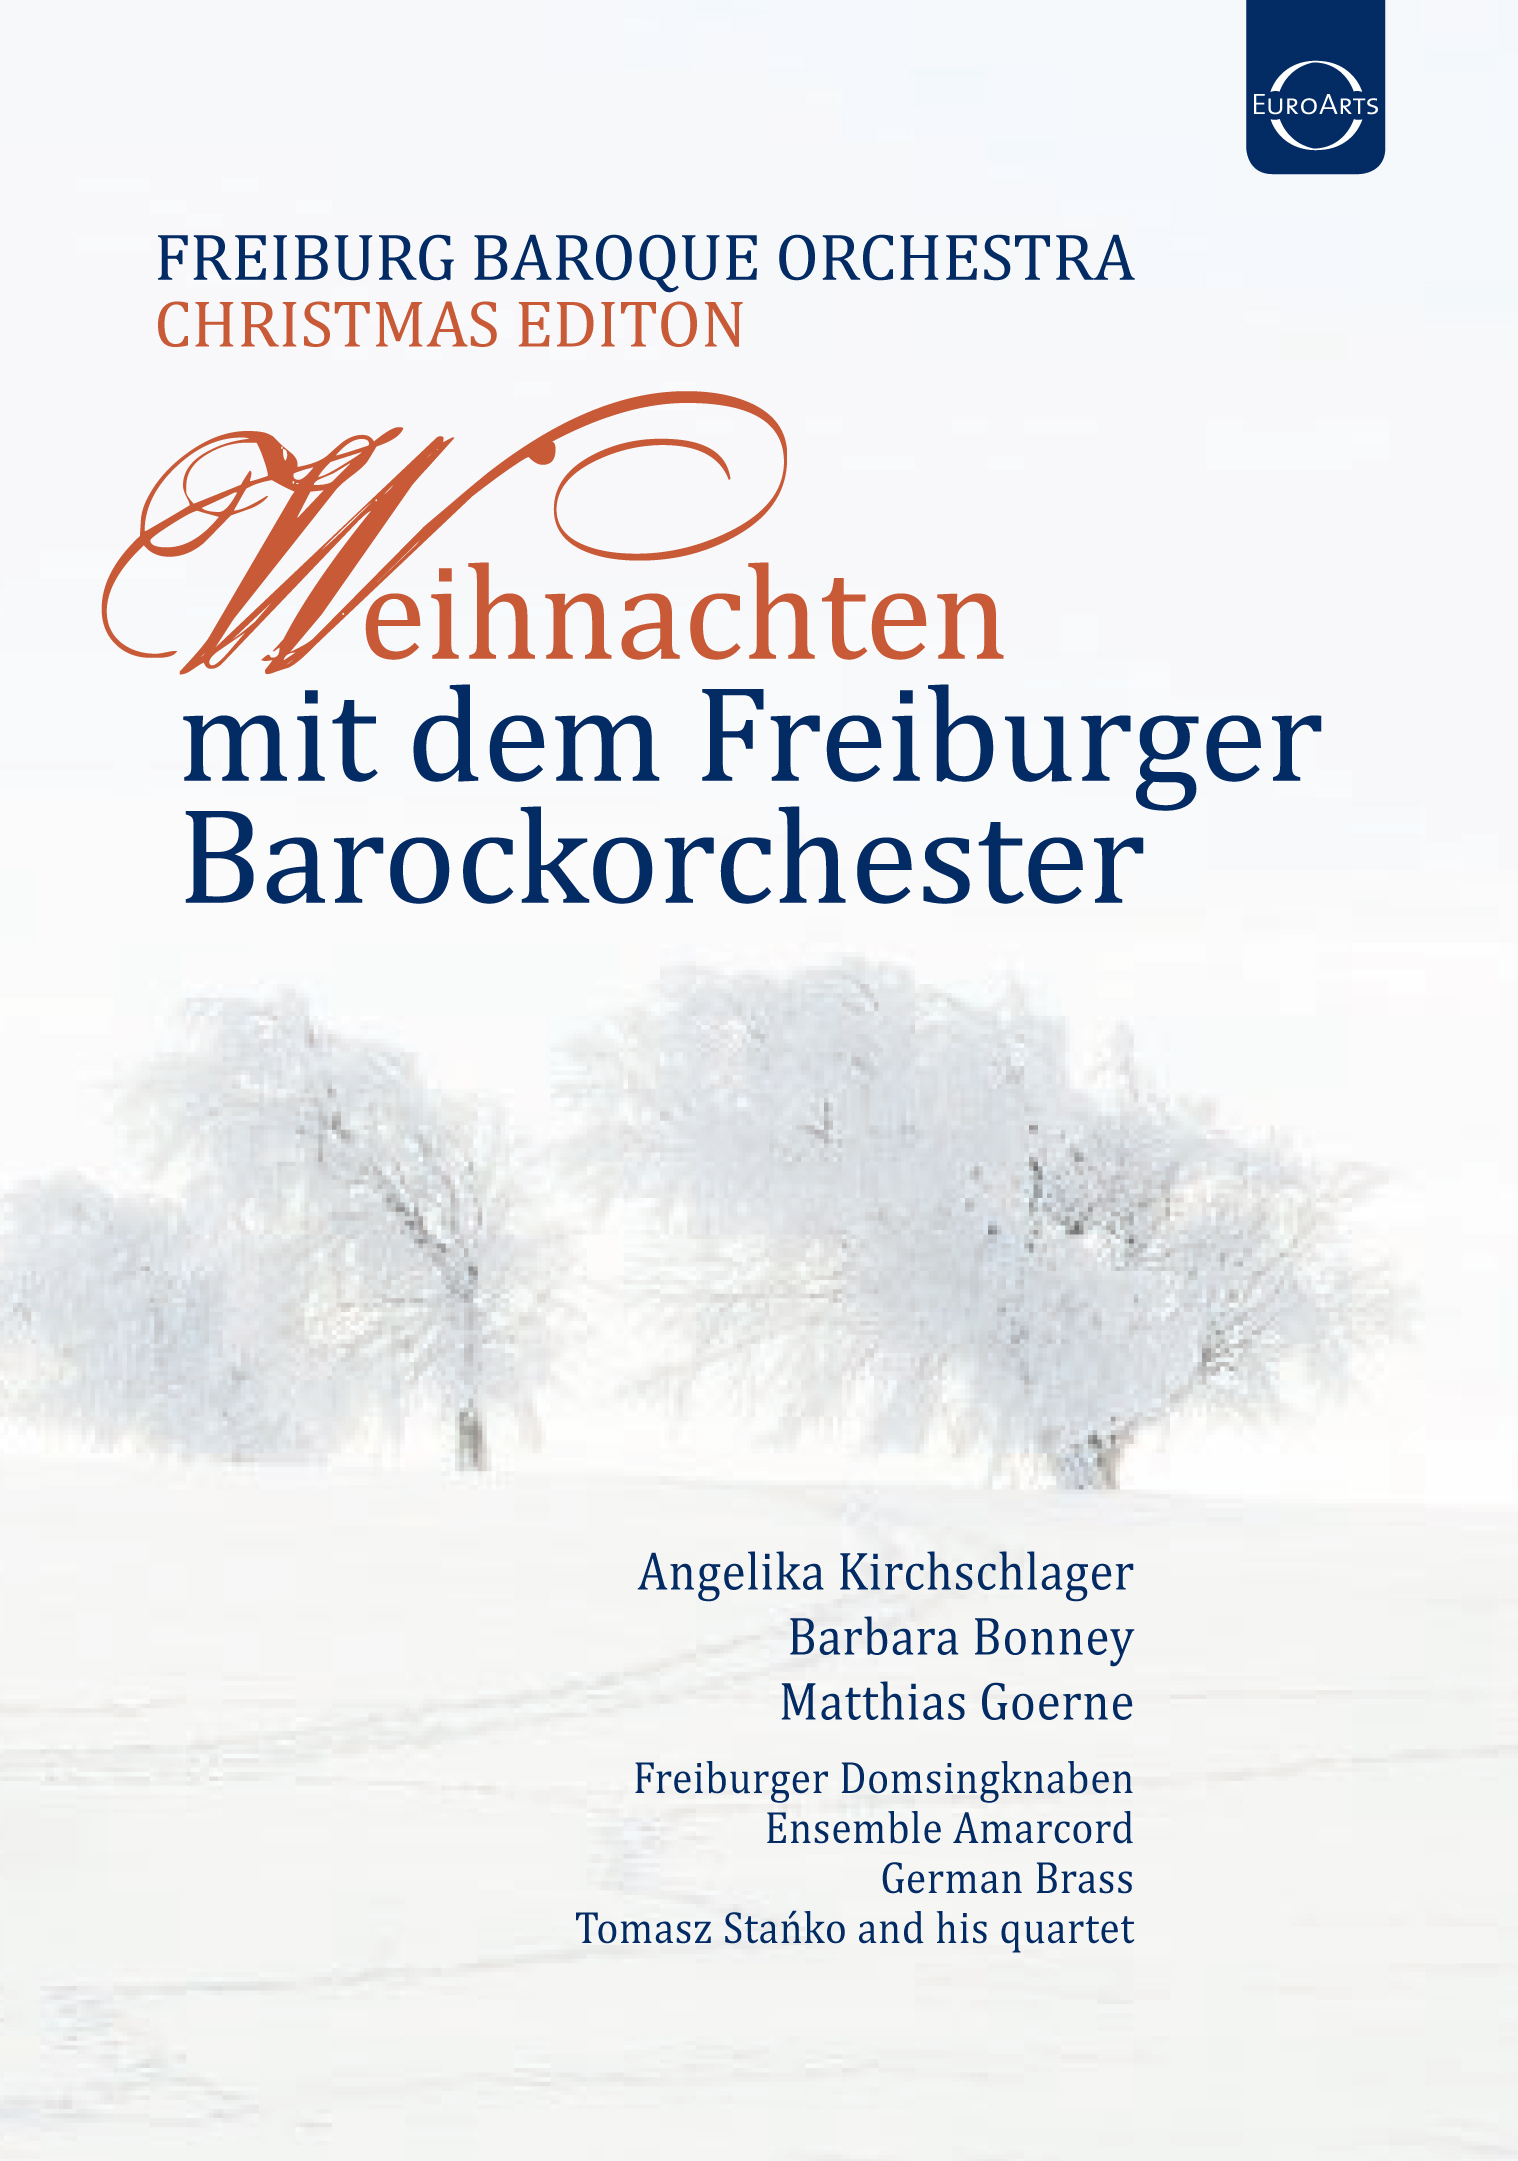 Christmas with the Freiburg Baroque Orchestra   Warner Classics